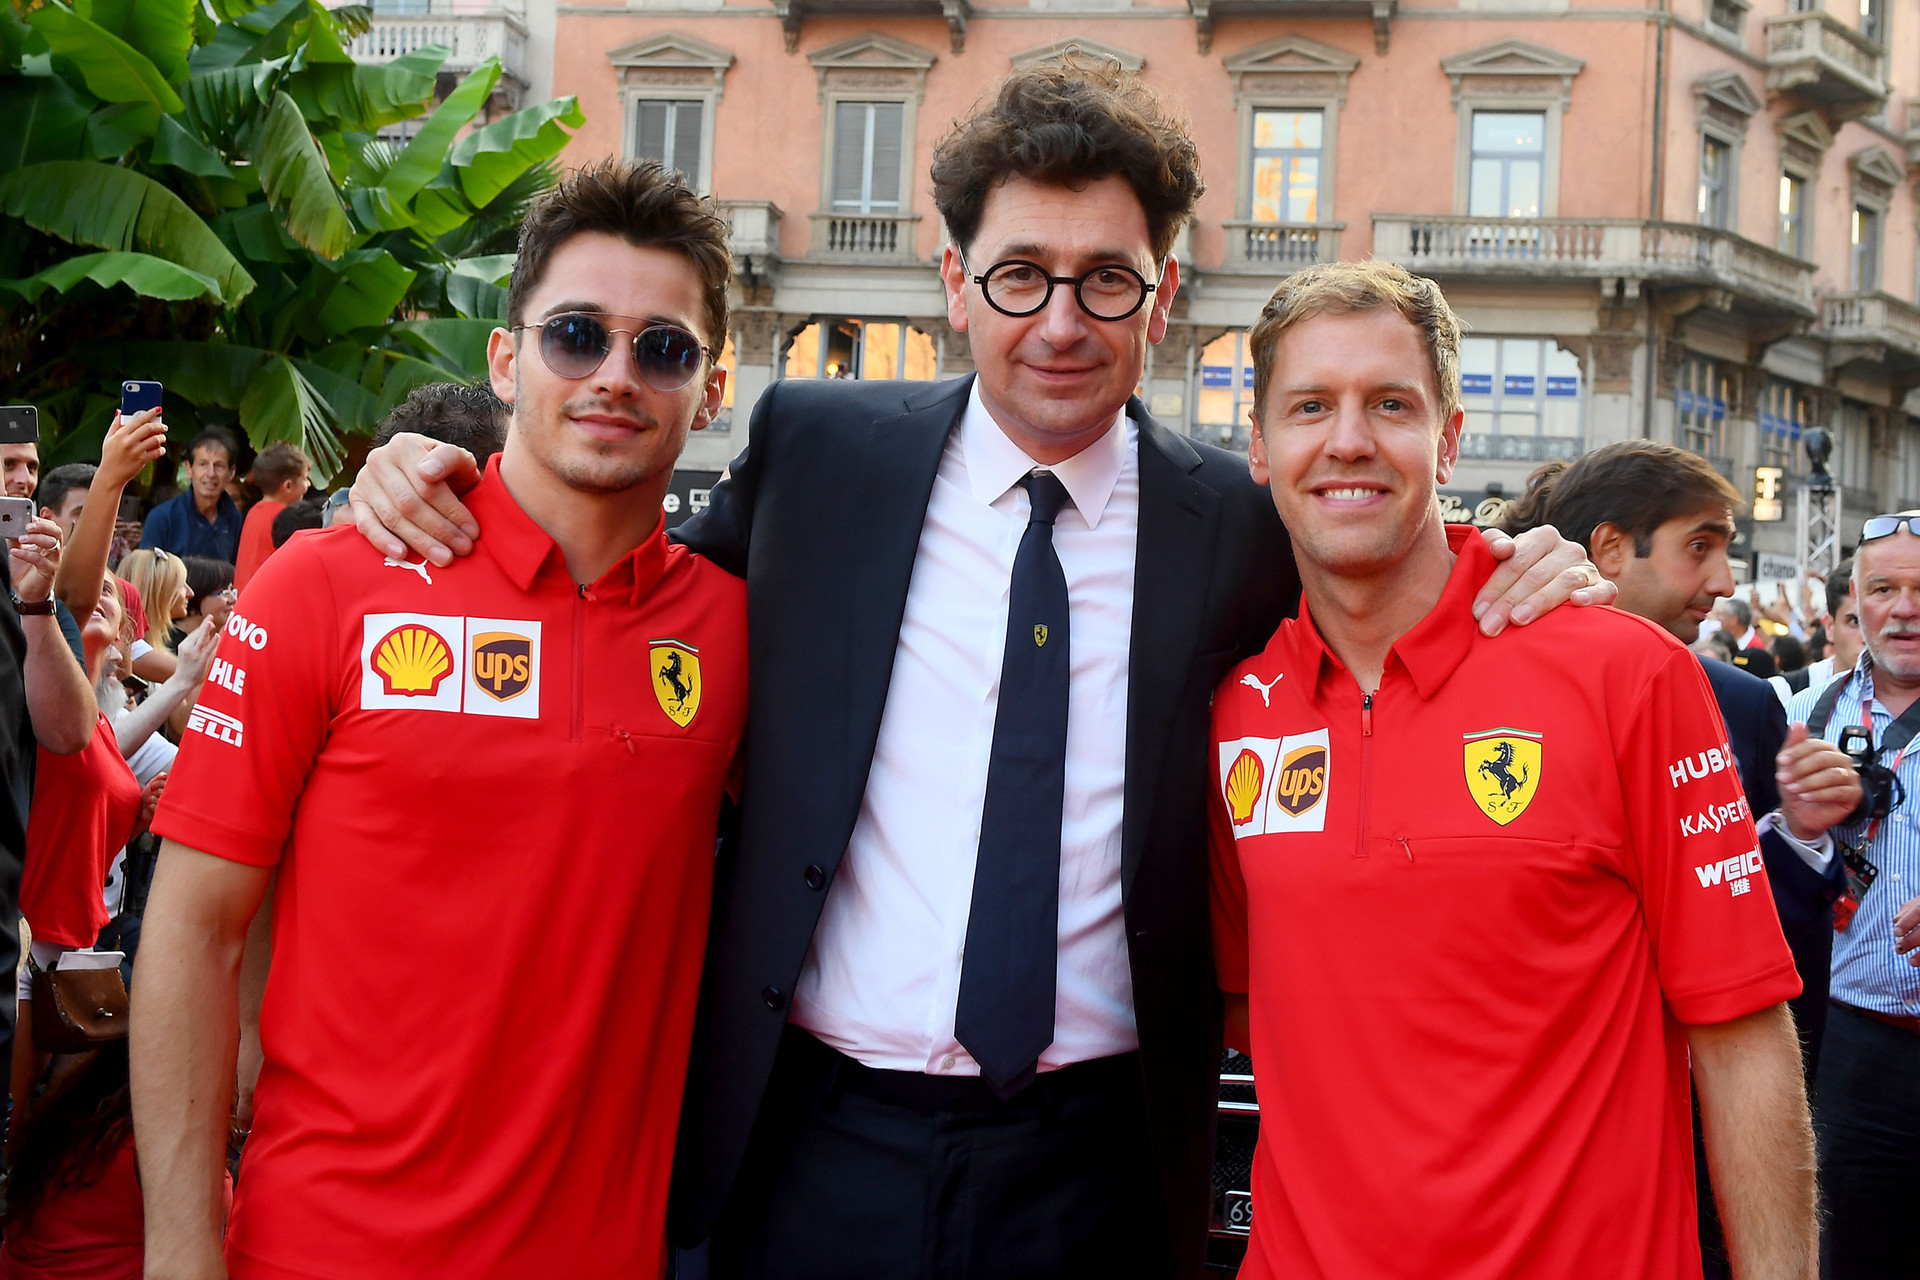 2019 Ferrari 90 Years celebration at Milan | 4 Sept 2019 website 32.jpg